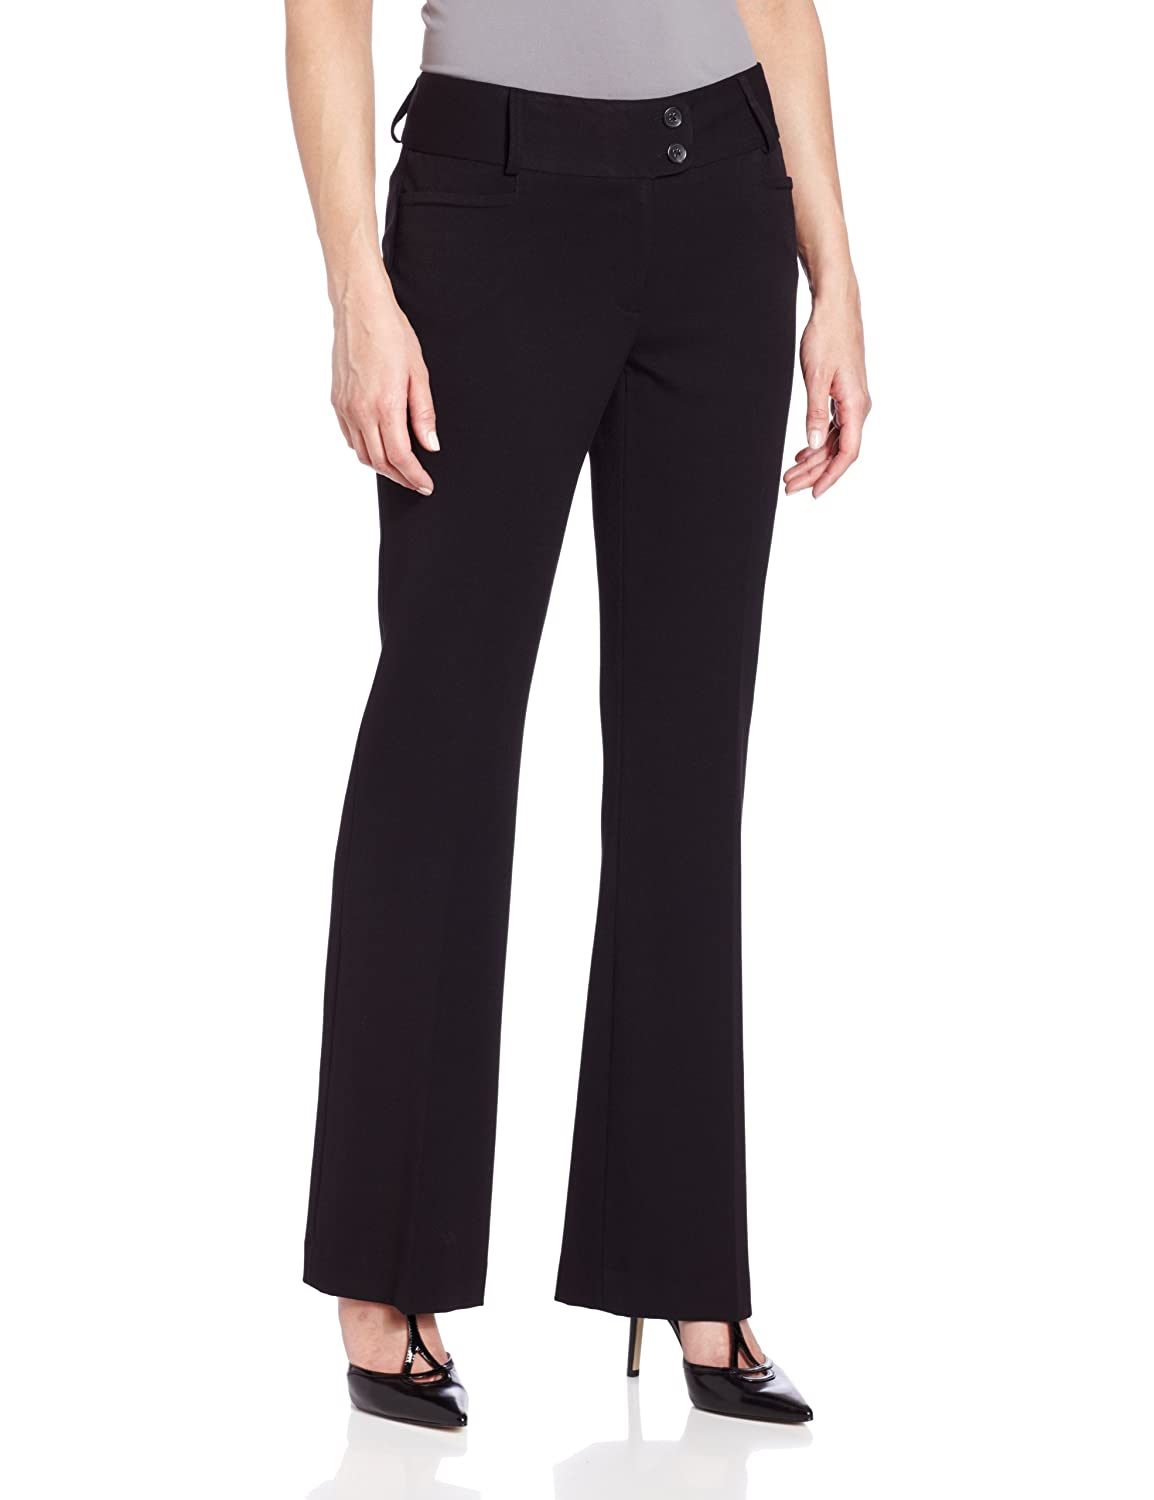 Womens Wear to Work Pants | Amazon.com